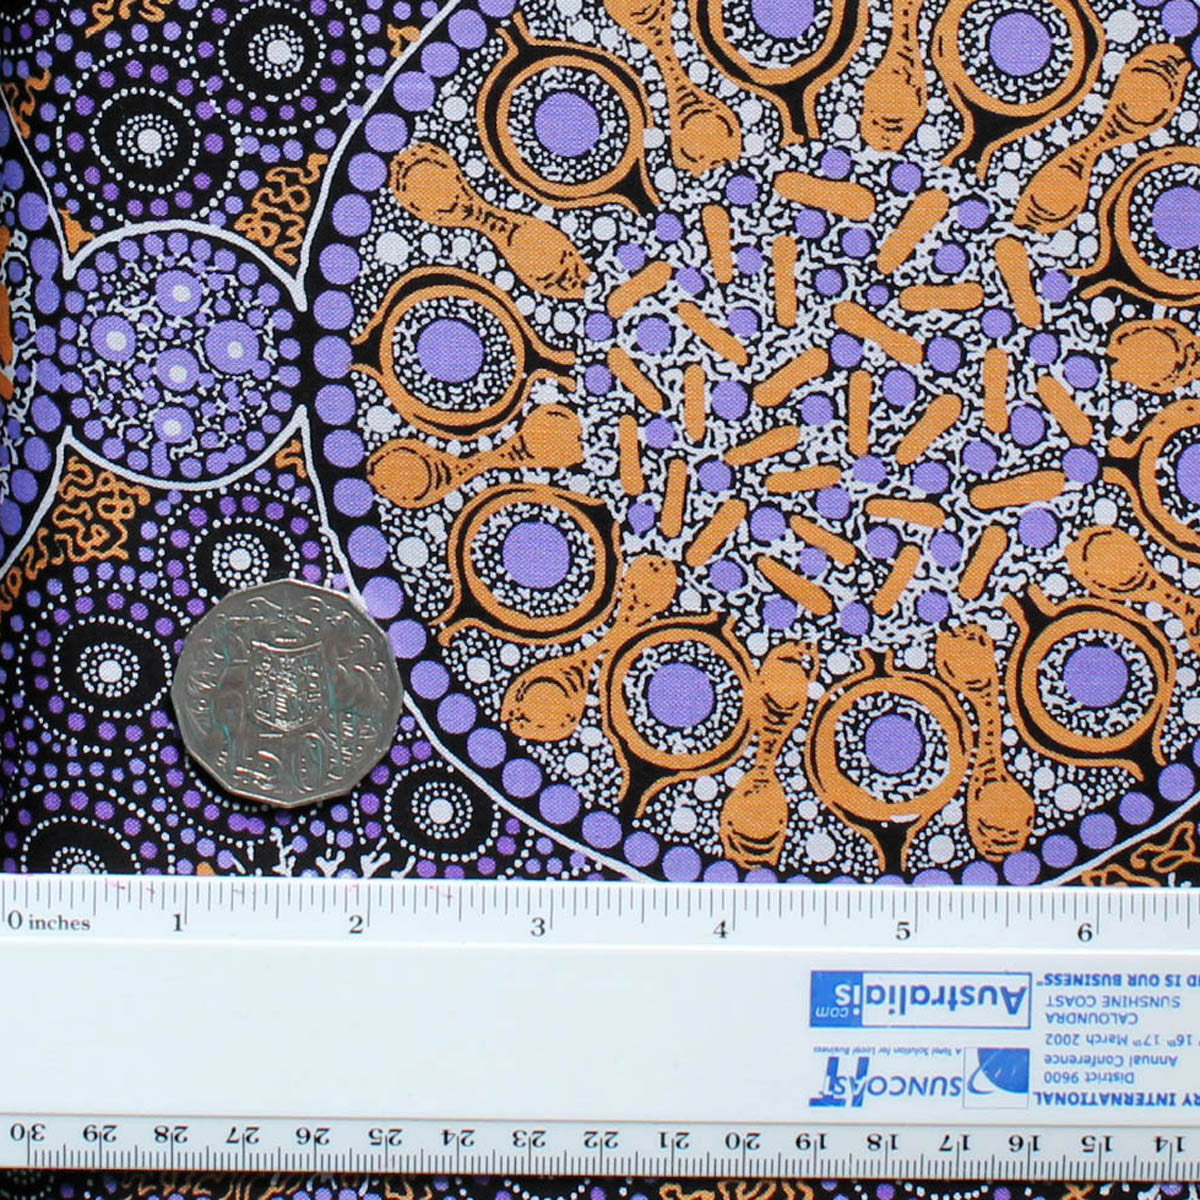 FRESH LIFE AFTER RAIN PURPLE by Australian Aboriginal Artist CHRISTINE DOOLAN